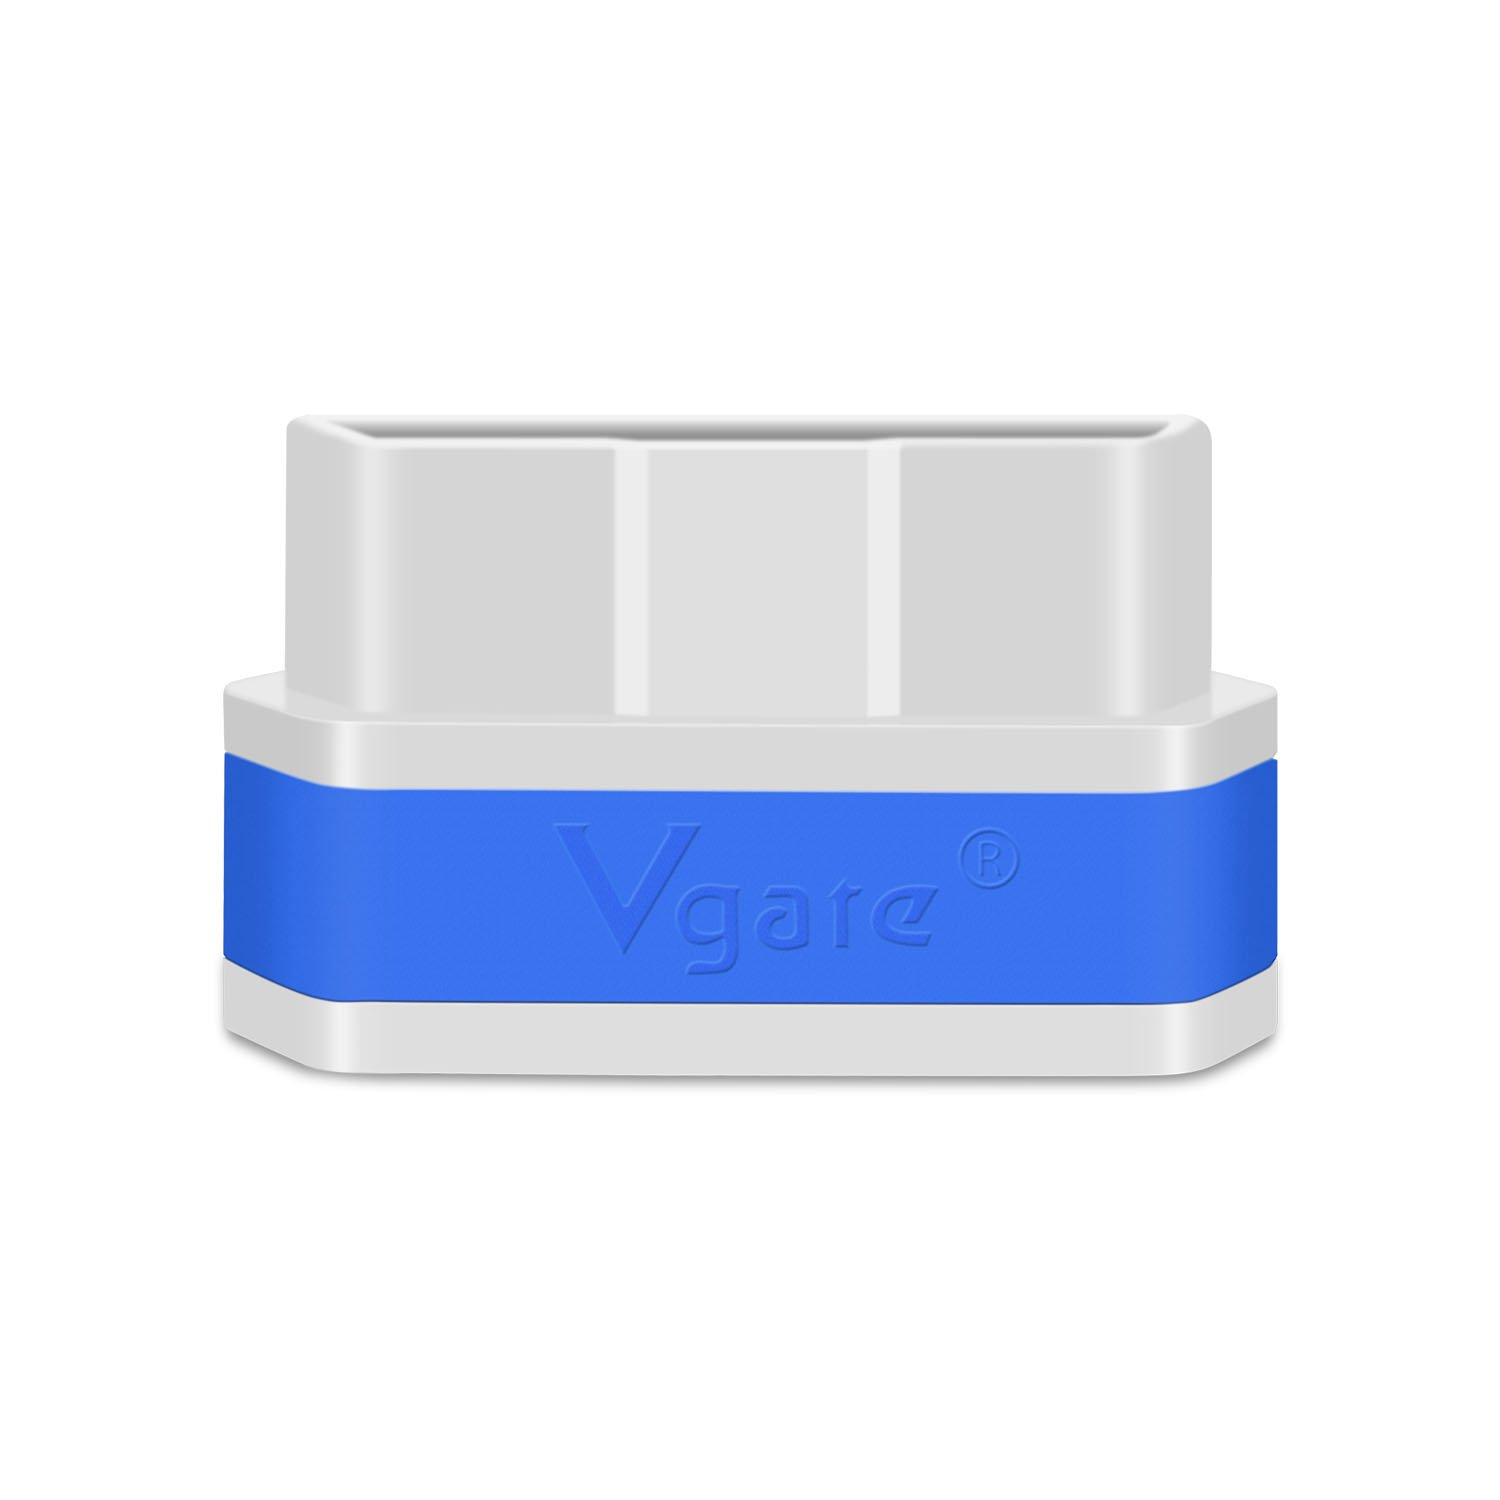 Vgate iCar 2 Mini ELM327 OBD II WiFi Car Diagnostic Scan Tool for iOS and Android with Switch Auto Sleep ( White & Blue )